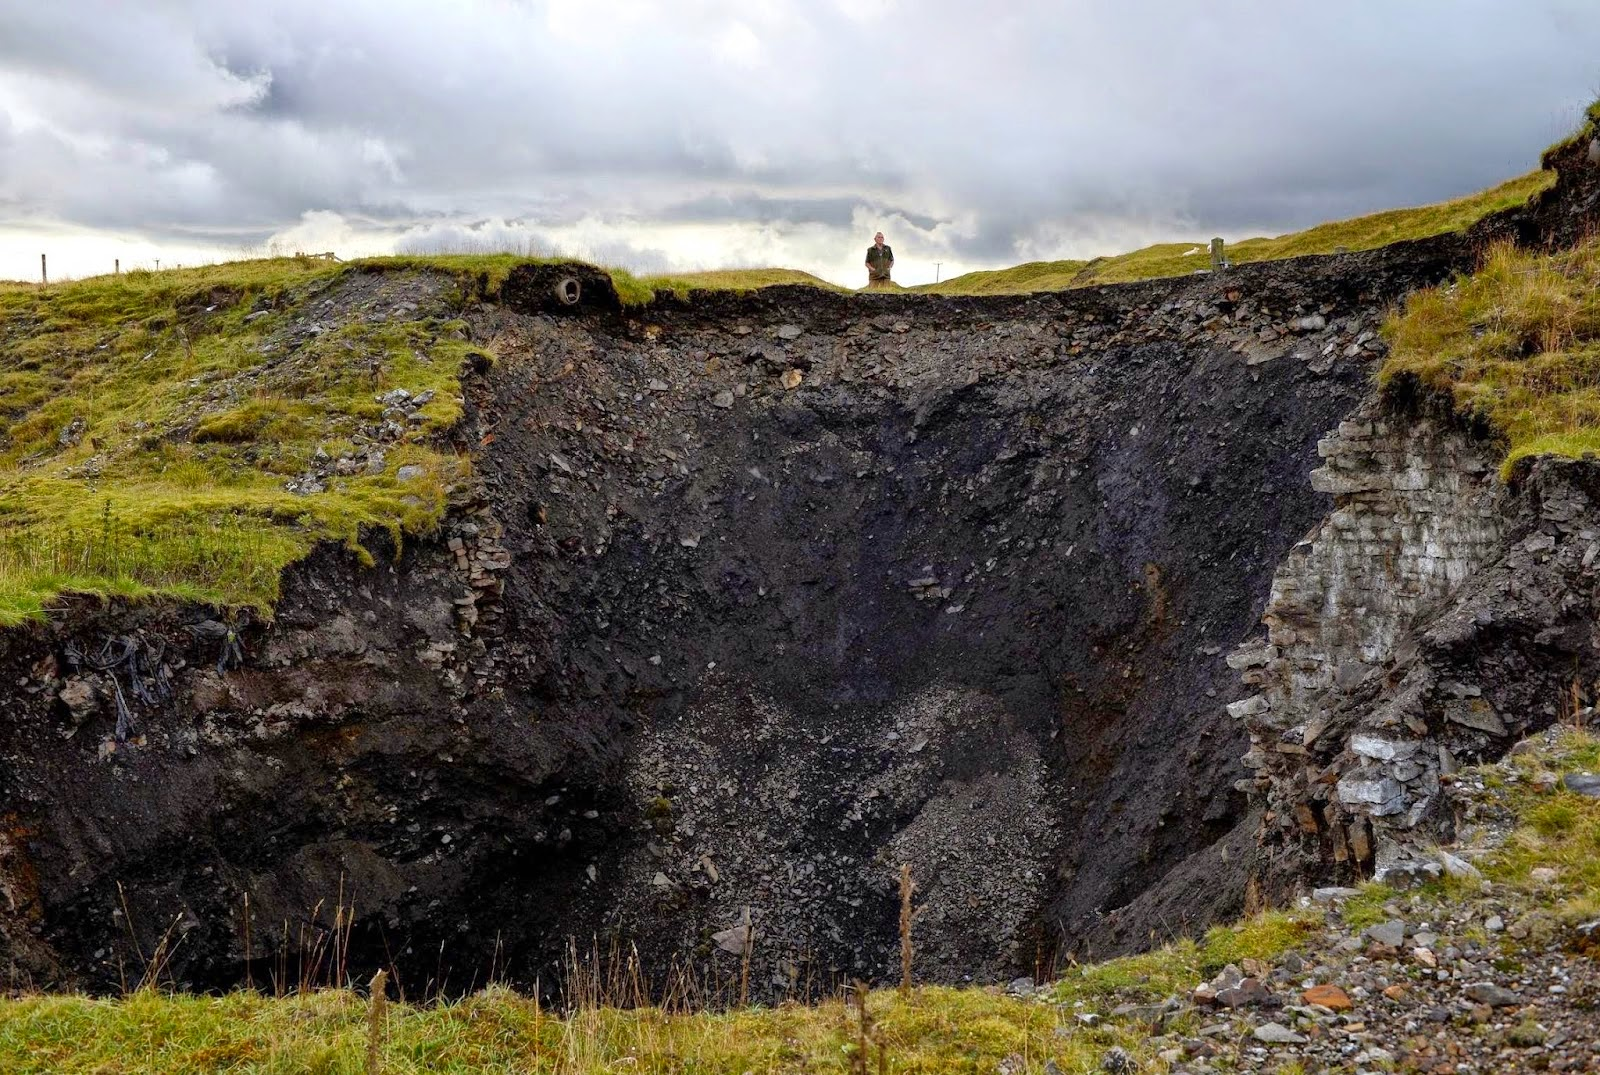 http://sciencythoughts.blogspot.co.uk/2014/08/giant-sinkhole-opens-up-in-county-durham.html